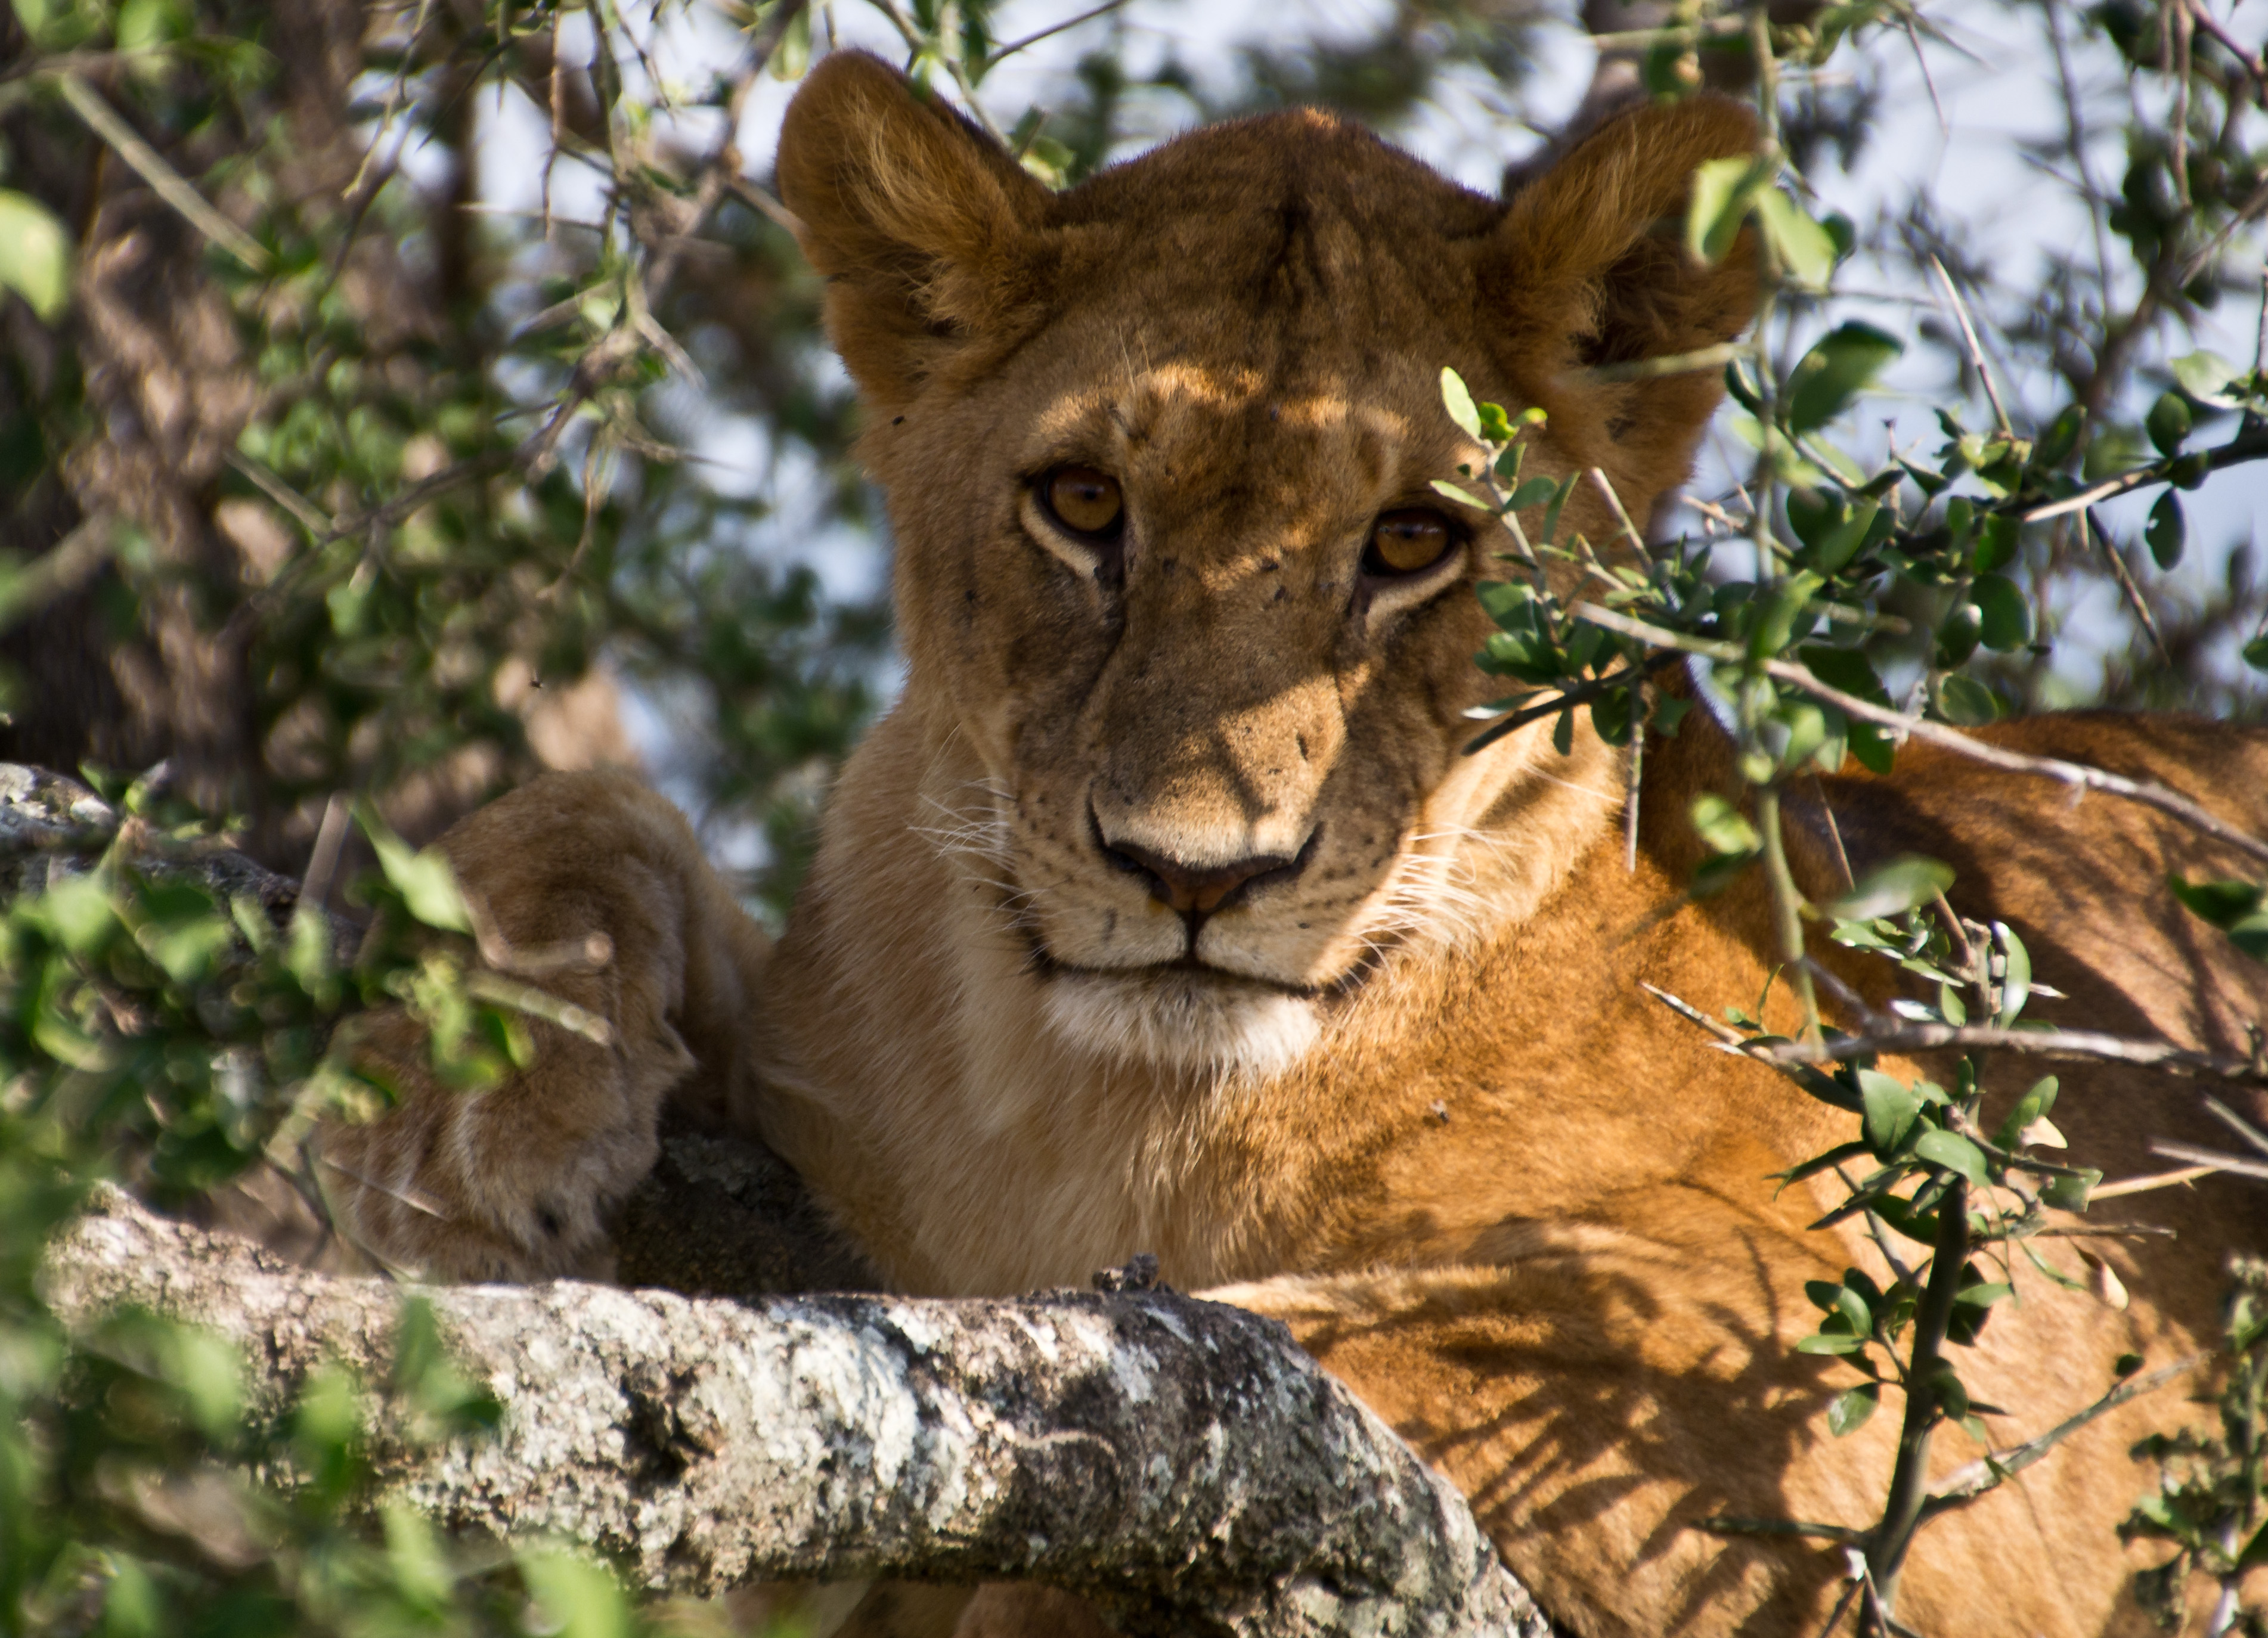 A lioness in the Serengeti